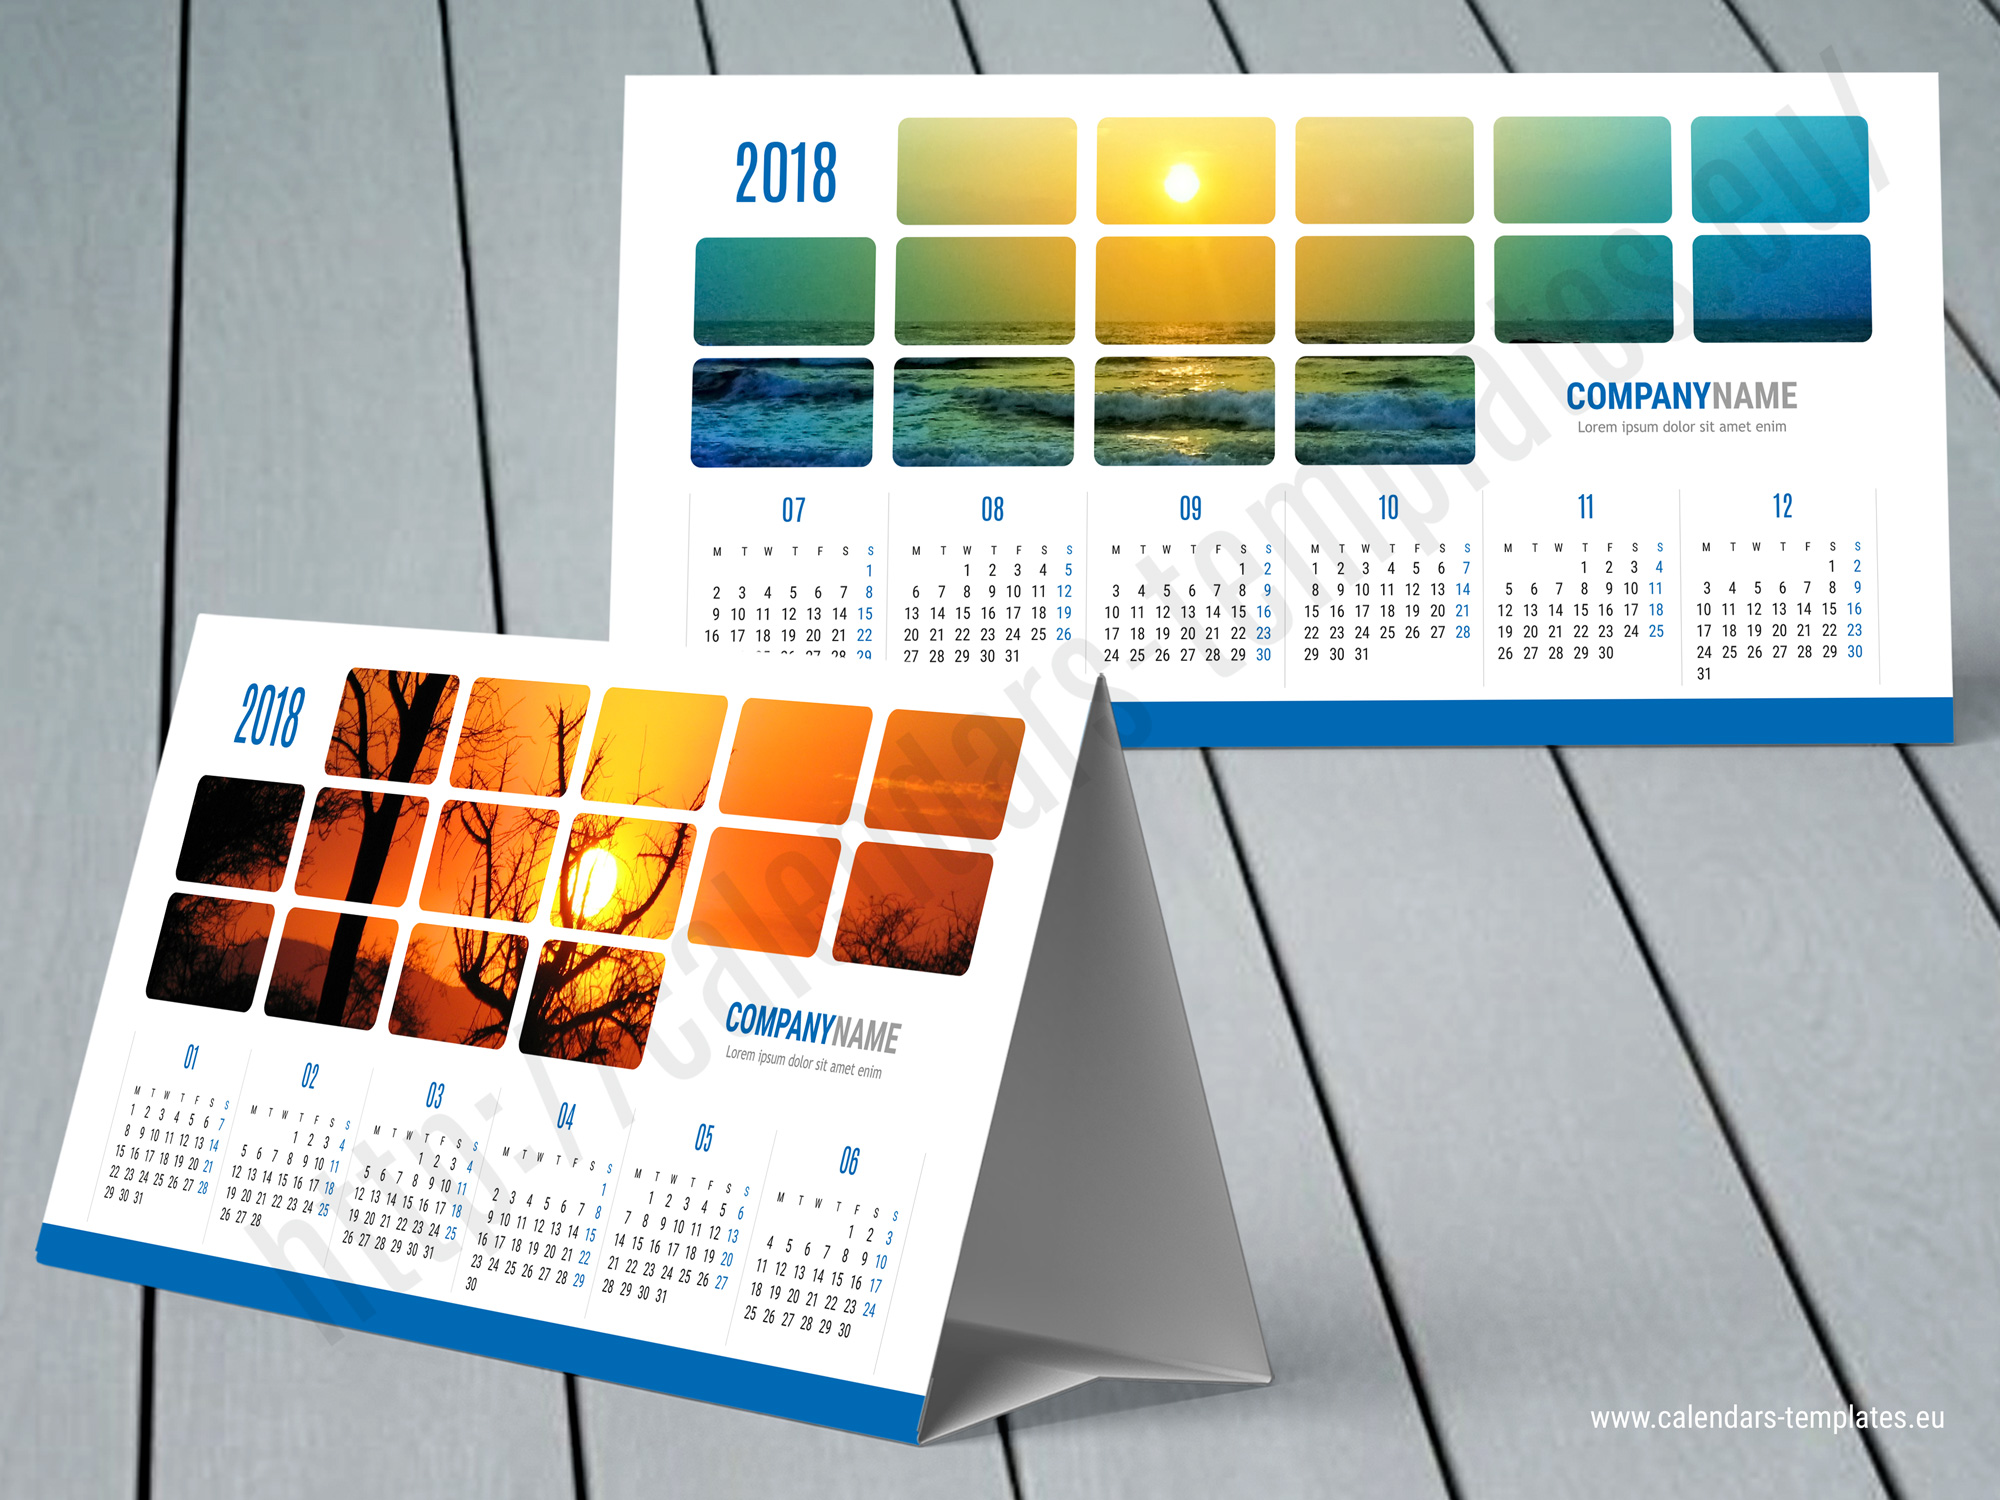 2018 desk yearly tent calendar template kb60 w1 desktop for Table design 2018